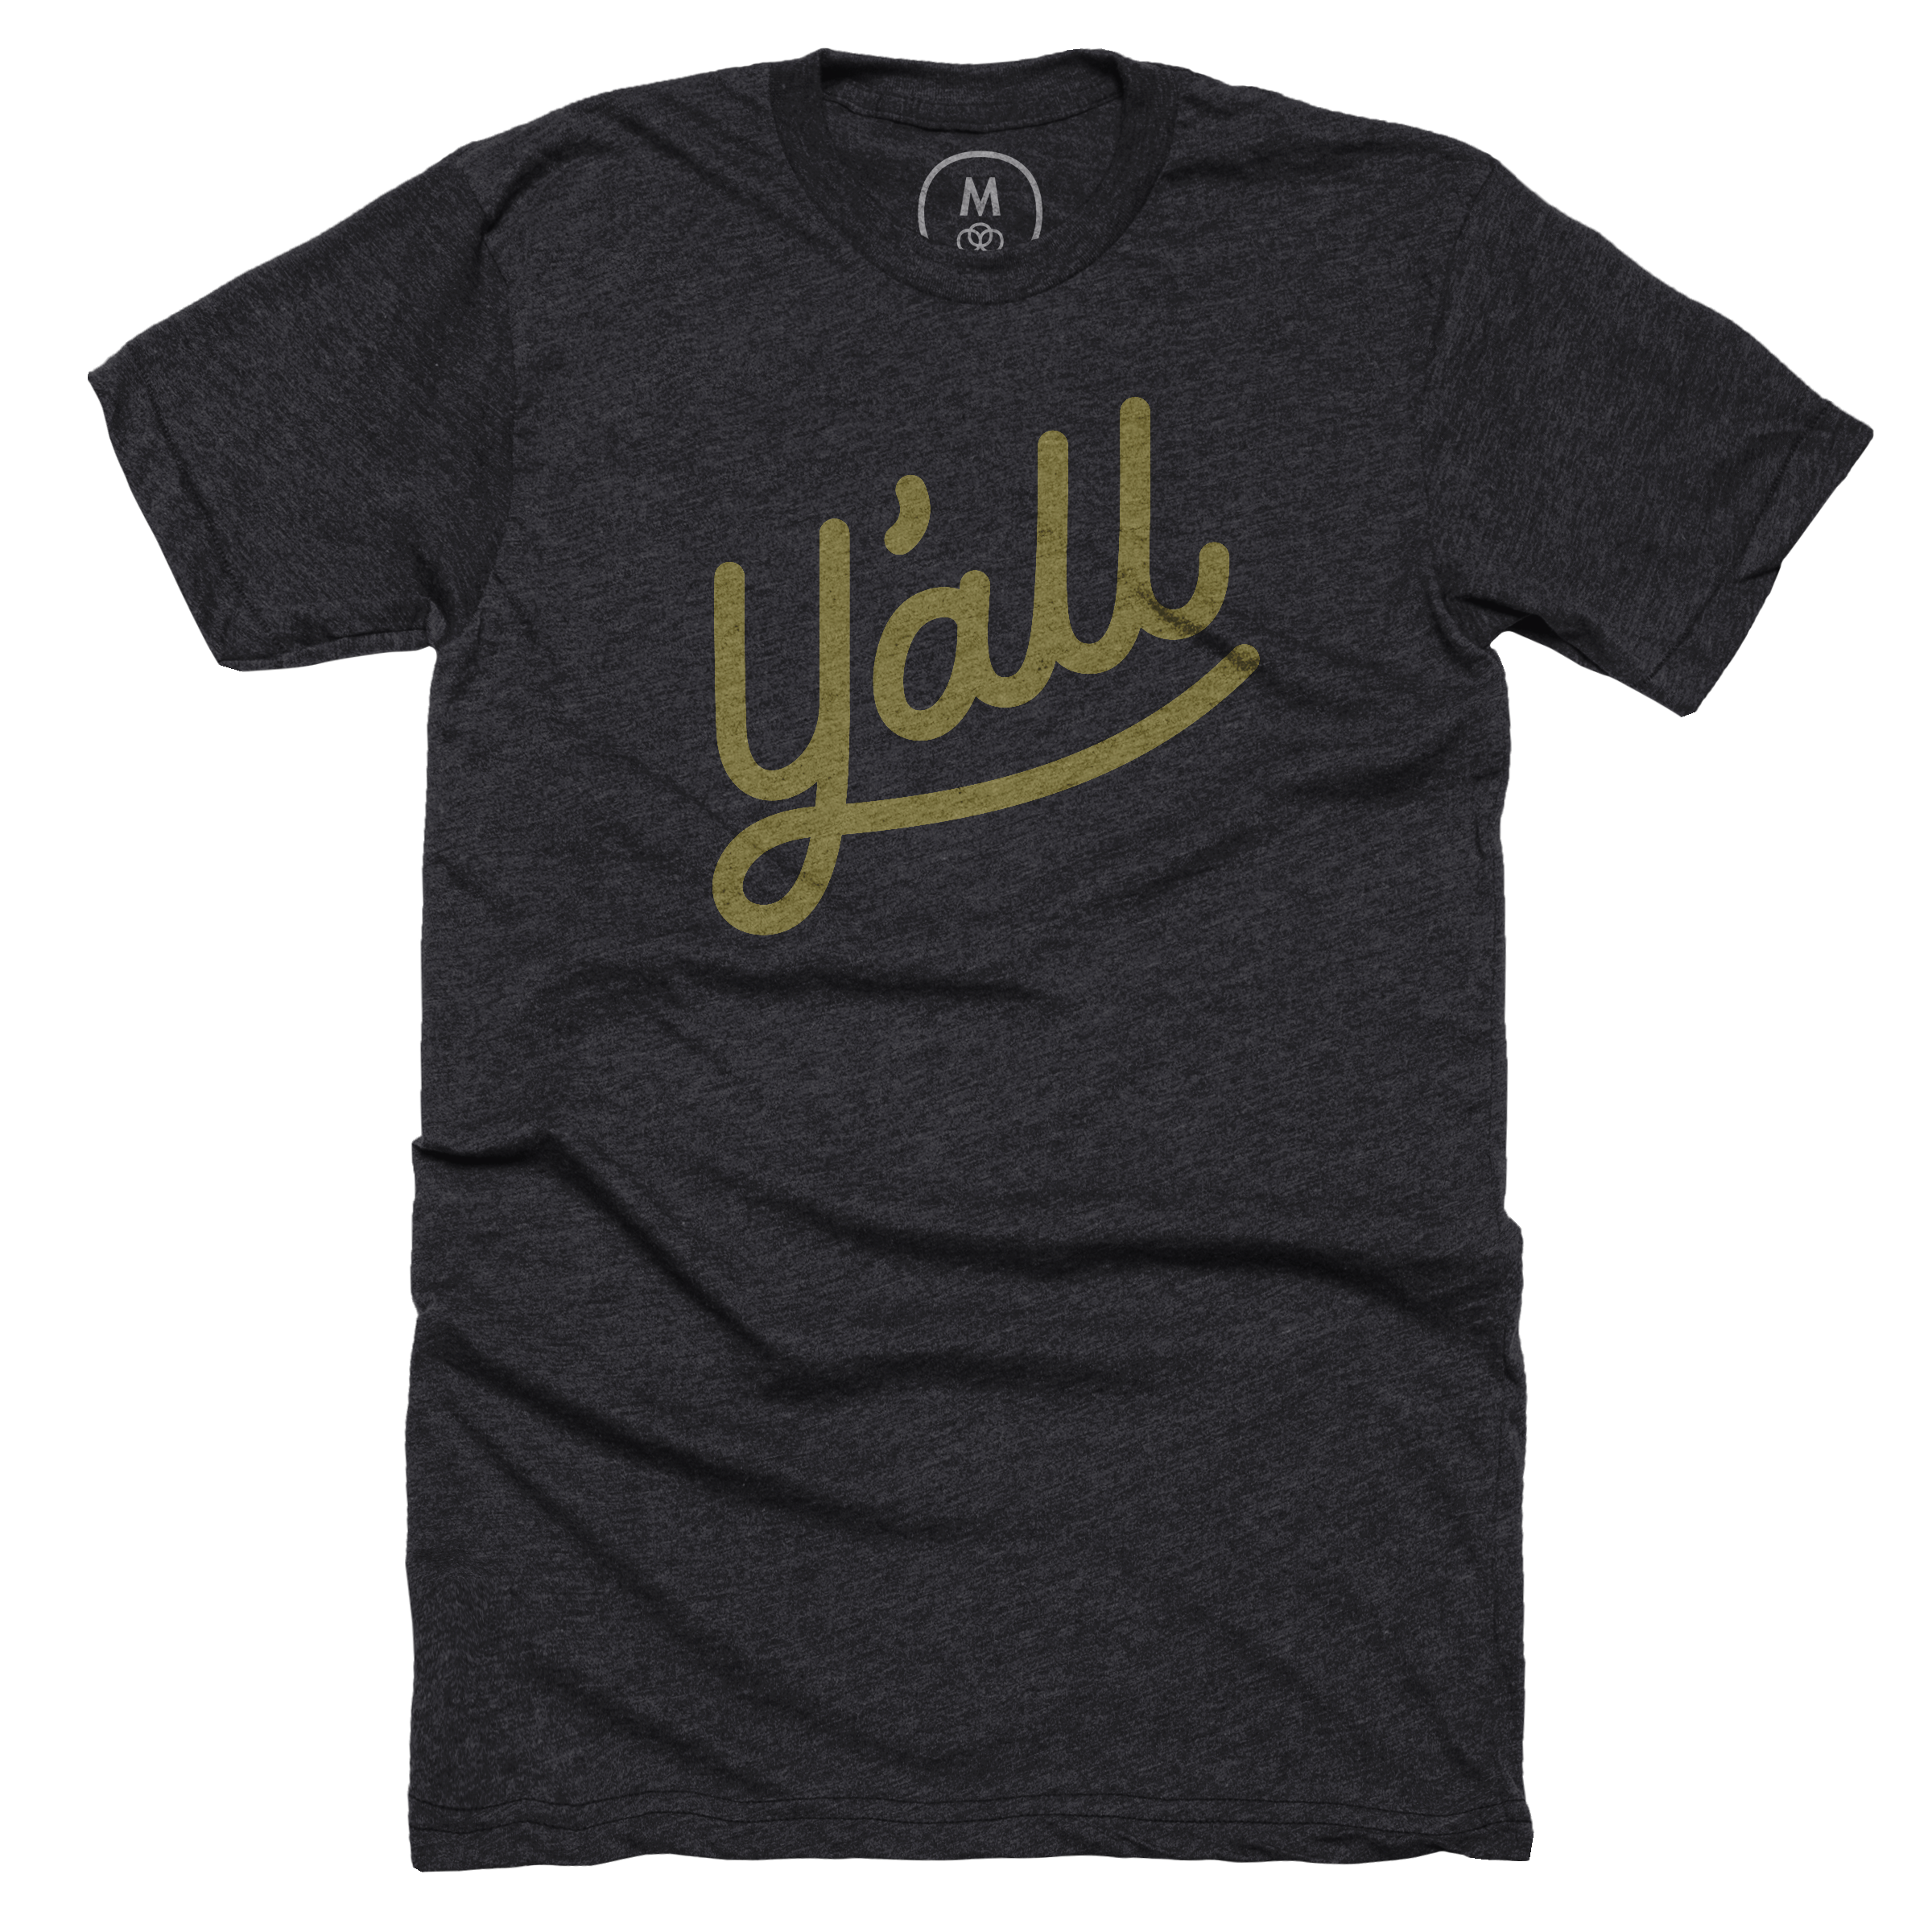 Y'all Charcoal (Men's)